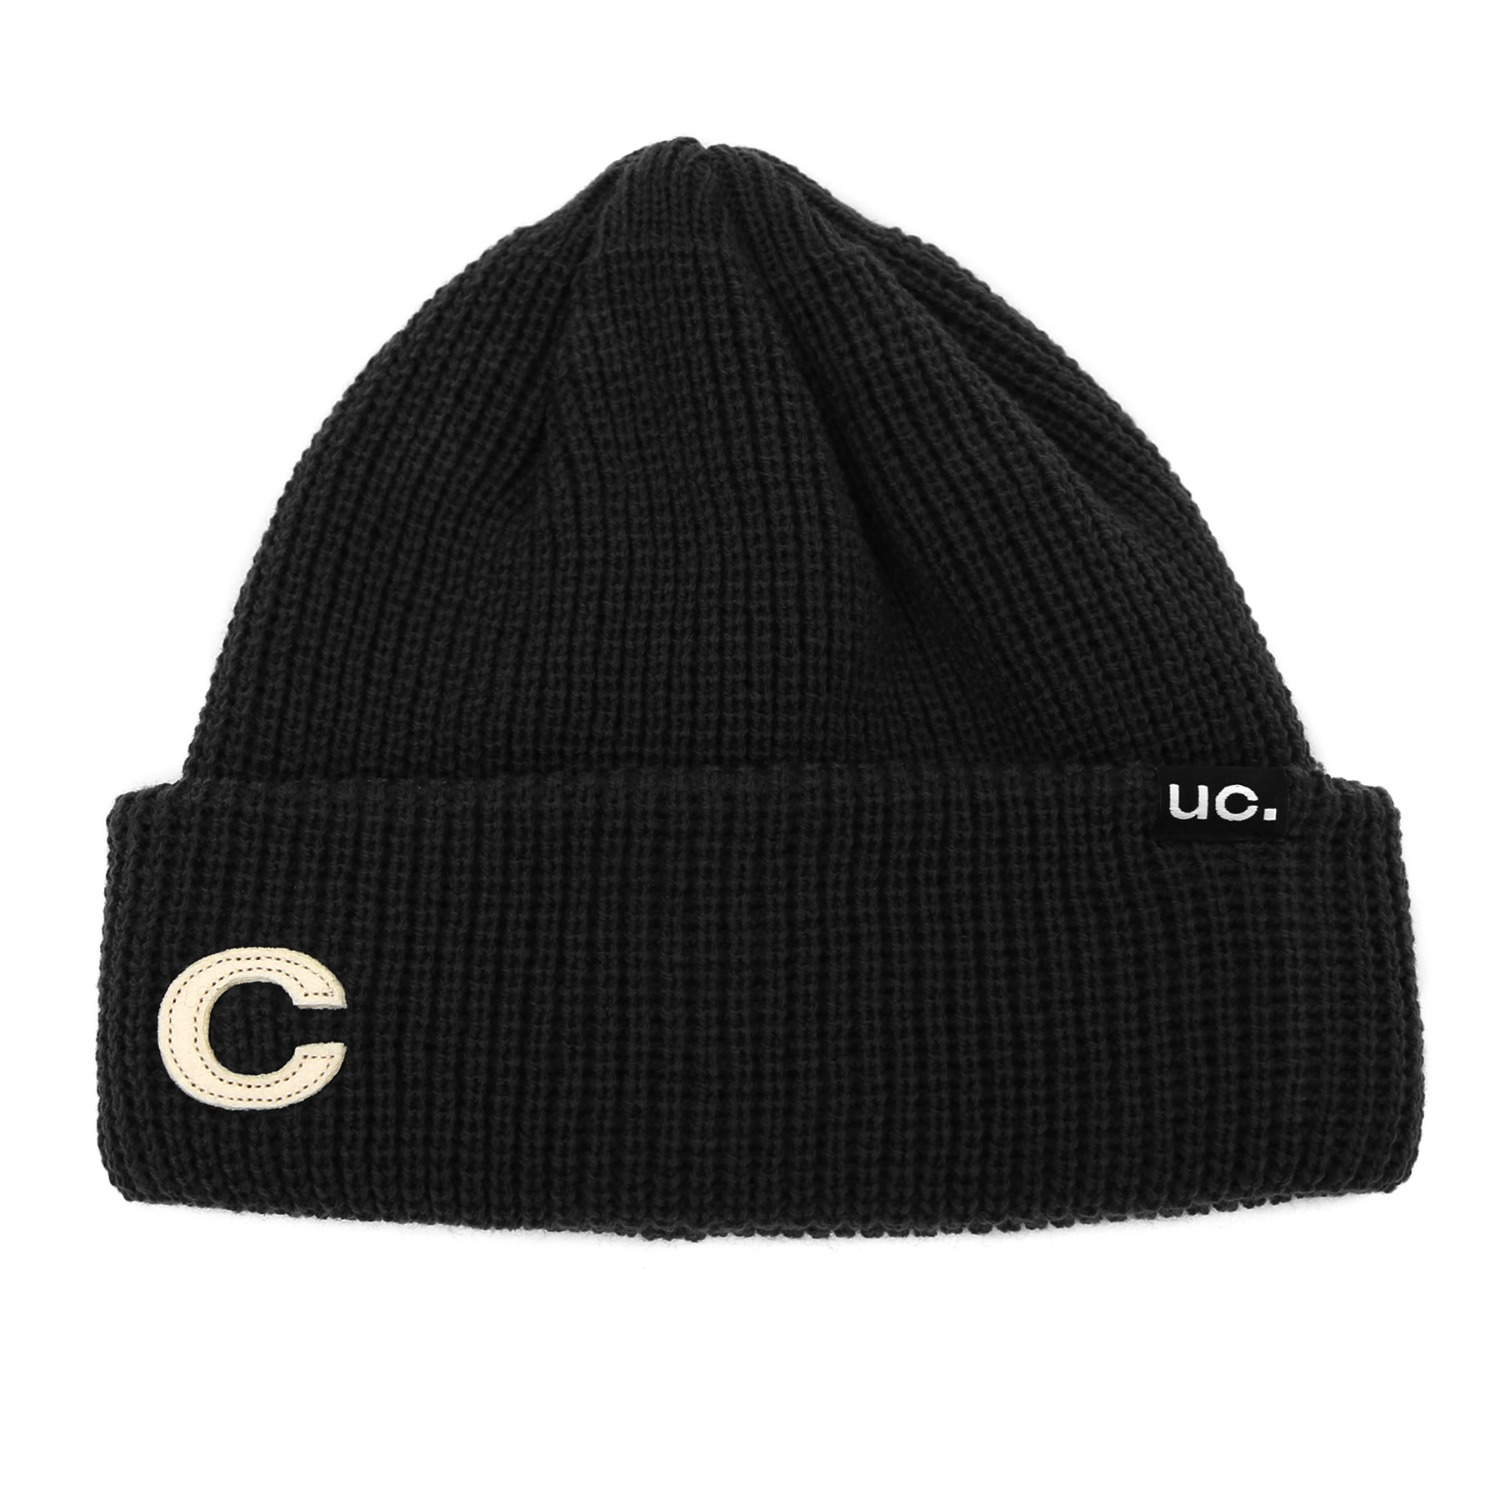 BEANIE / MARINE FIT / DOUBLE TAB / M BLACK